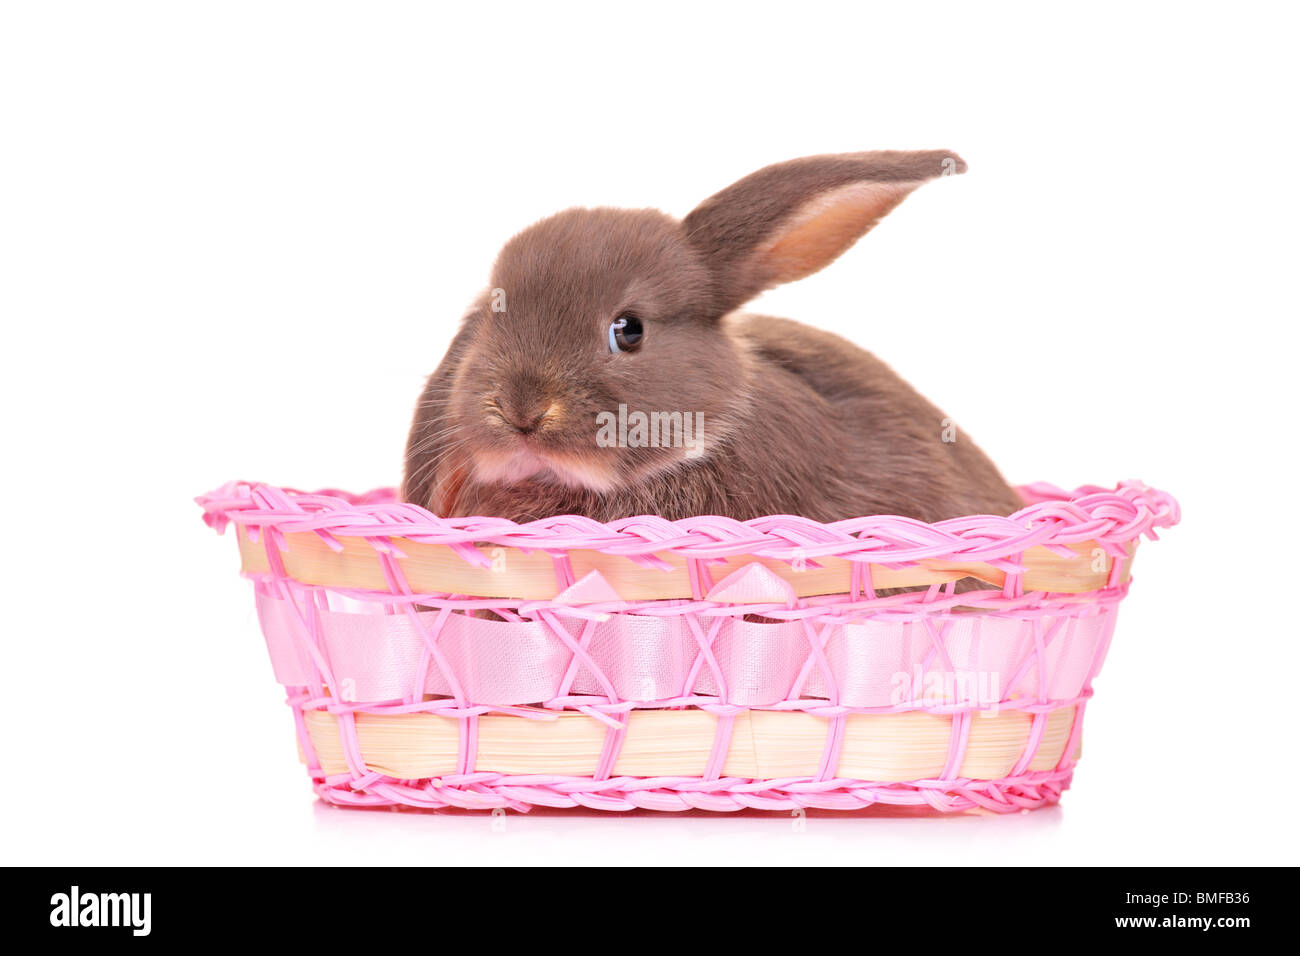 A small rabbit in a basket - Stock Image